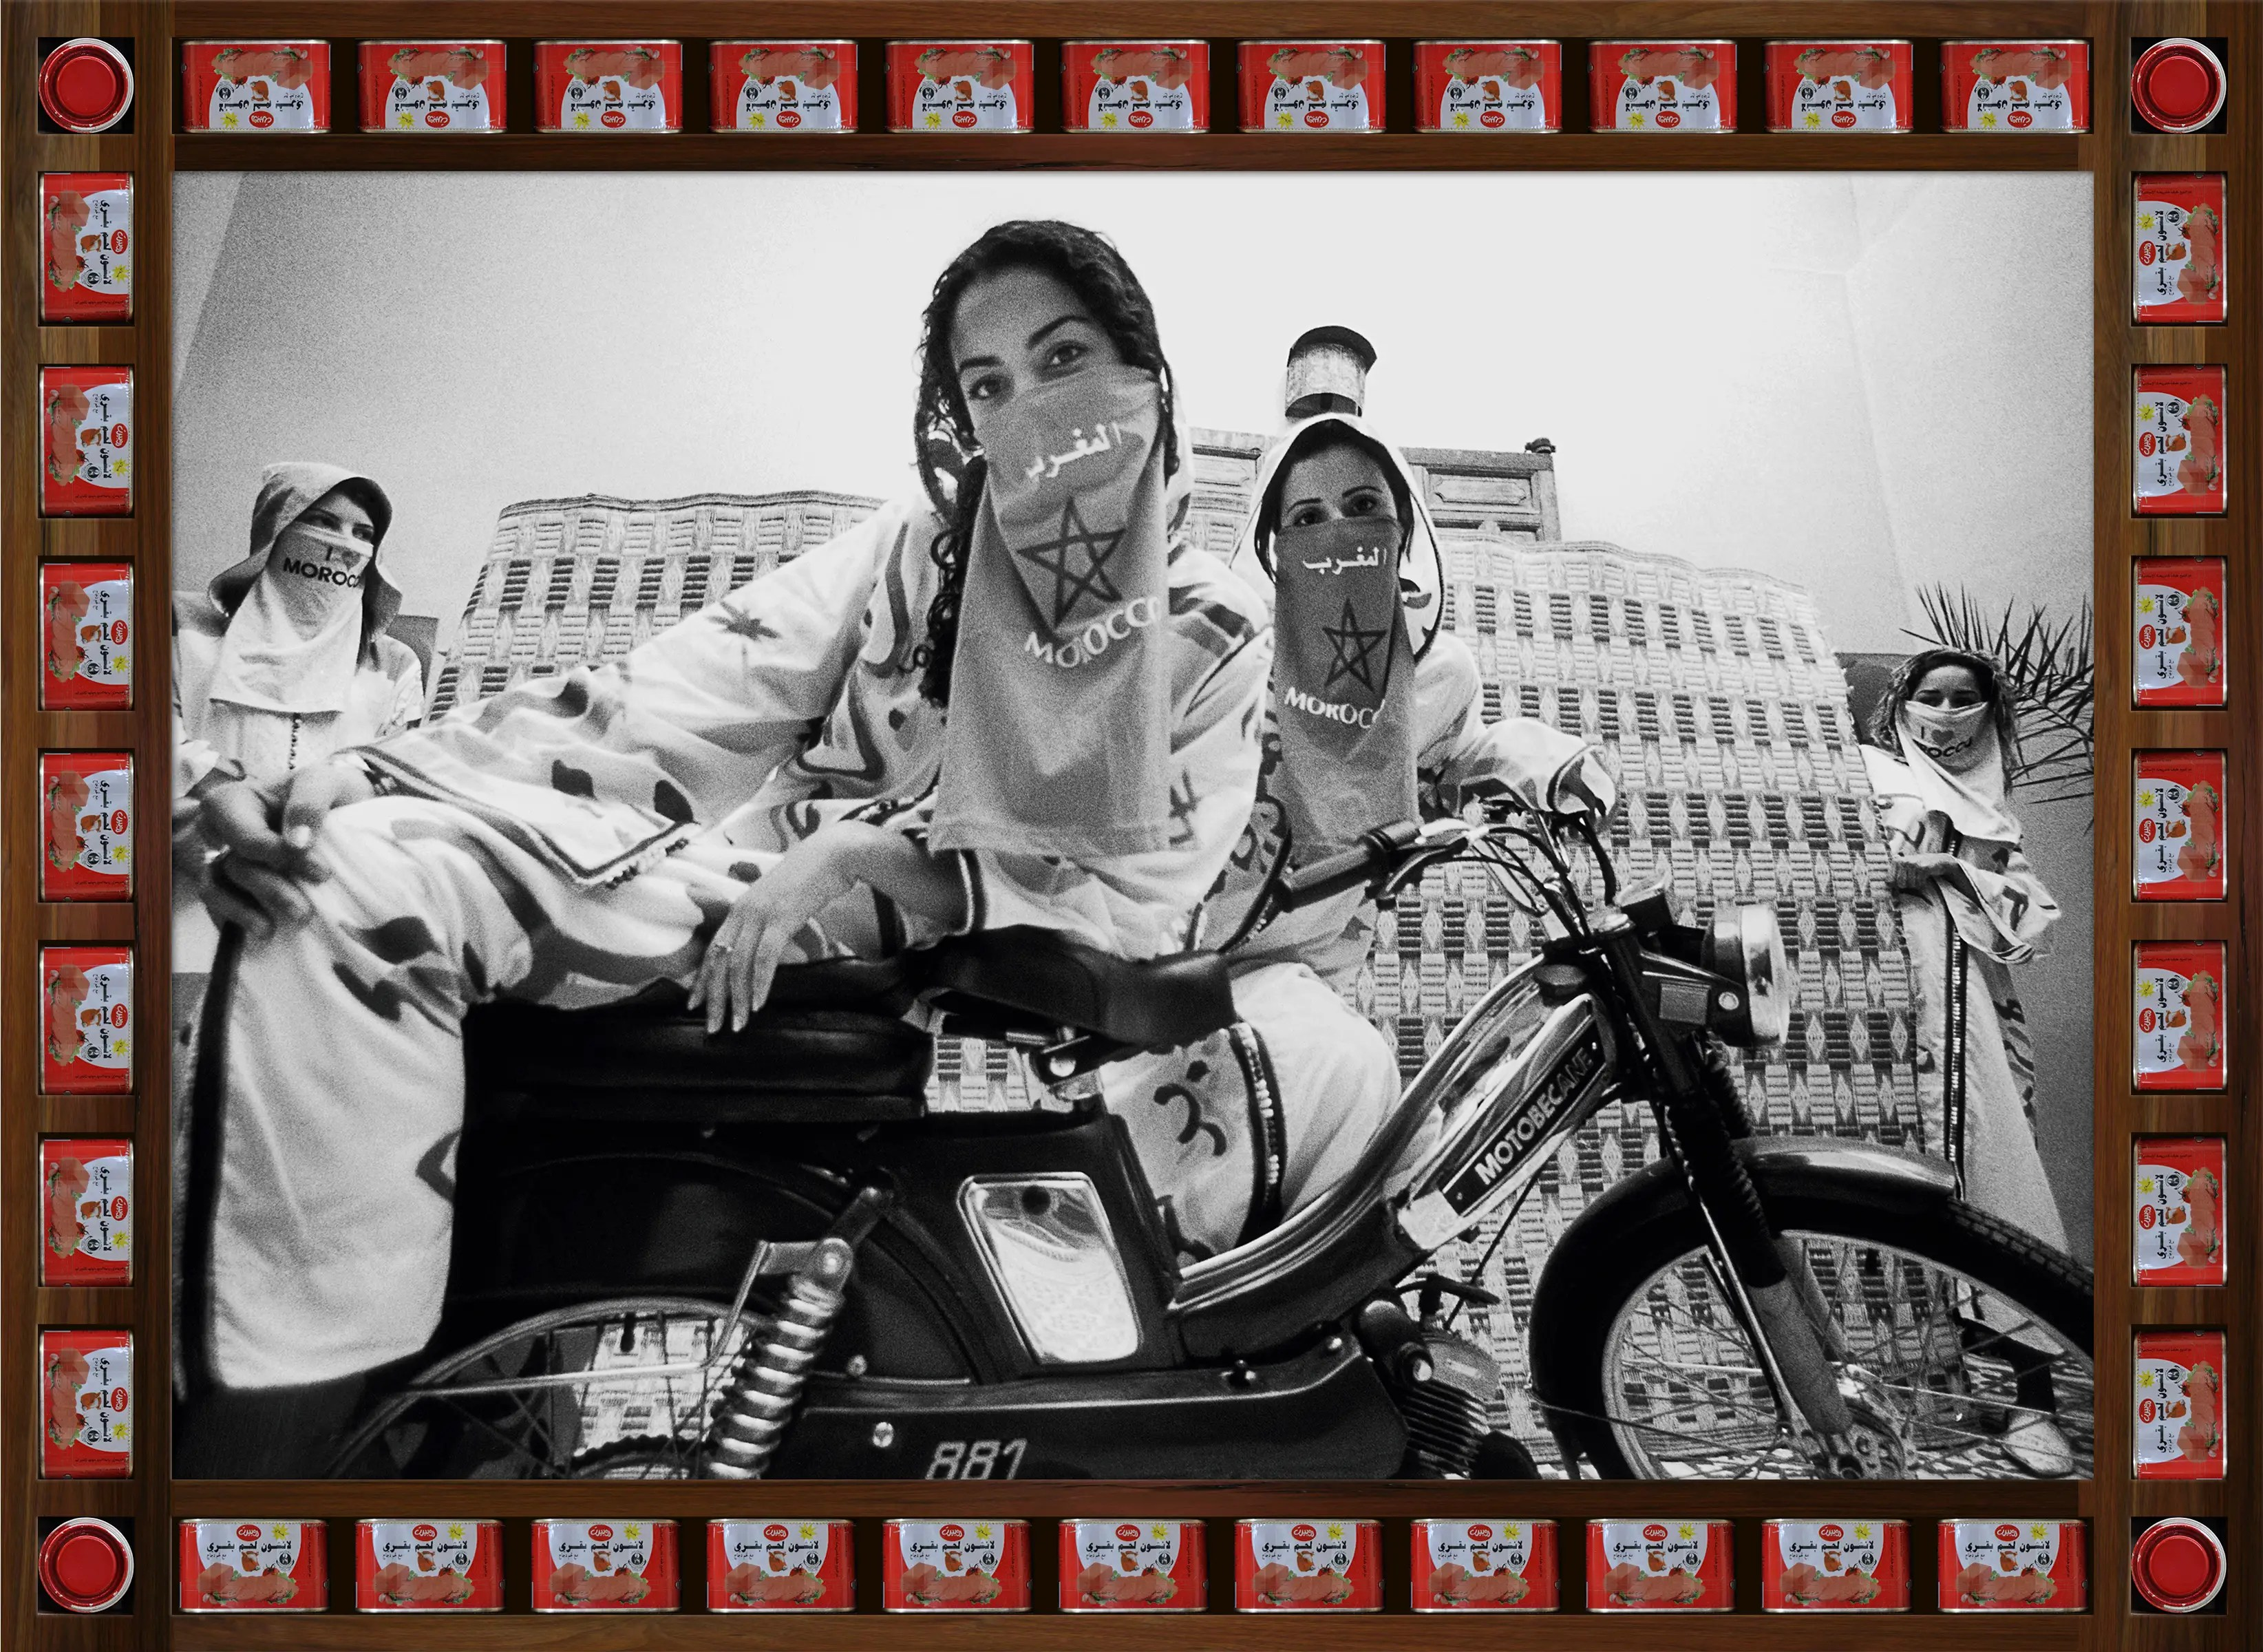 Because of the winding streets of Marrakesh's historic center, almost all Moroccans ride motorbikes to get around.